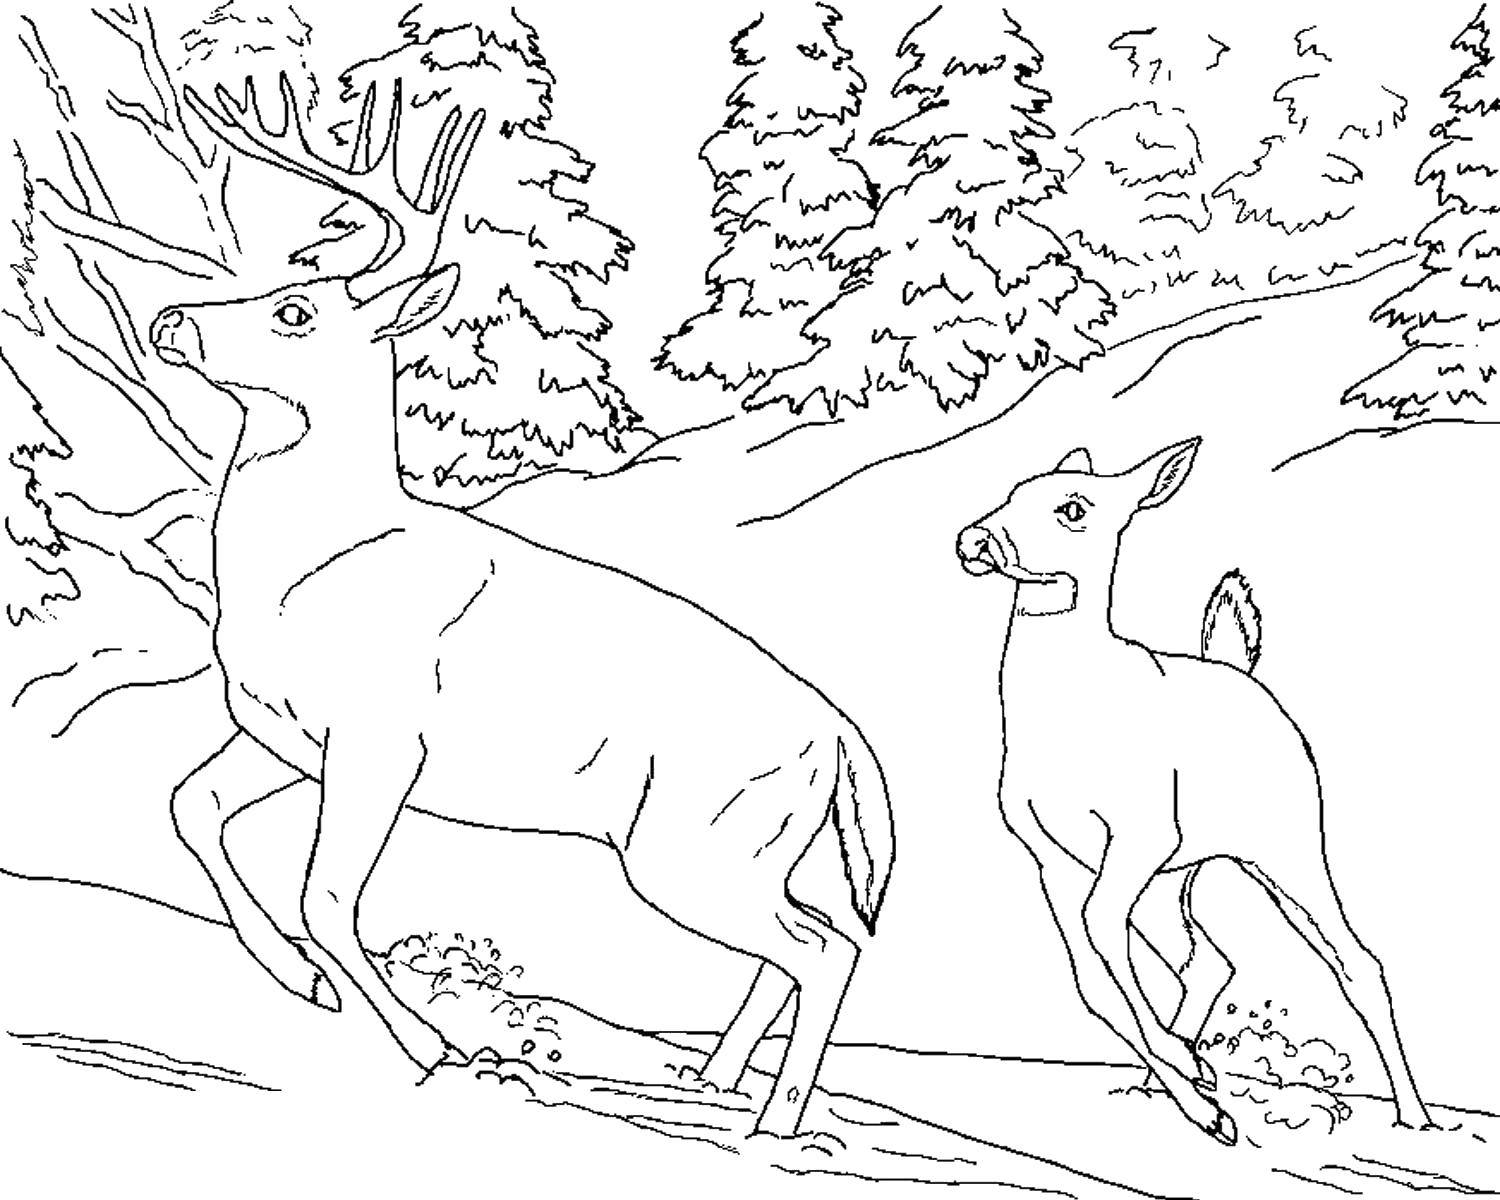 Coloring deer run away from a predator category the forest tags nature